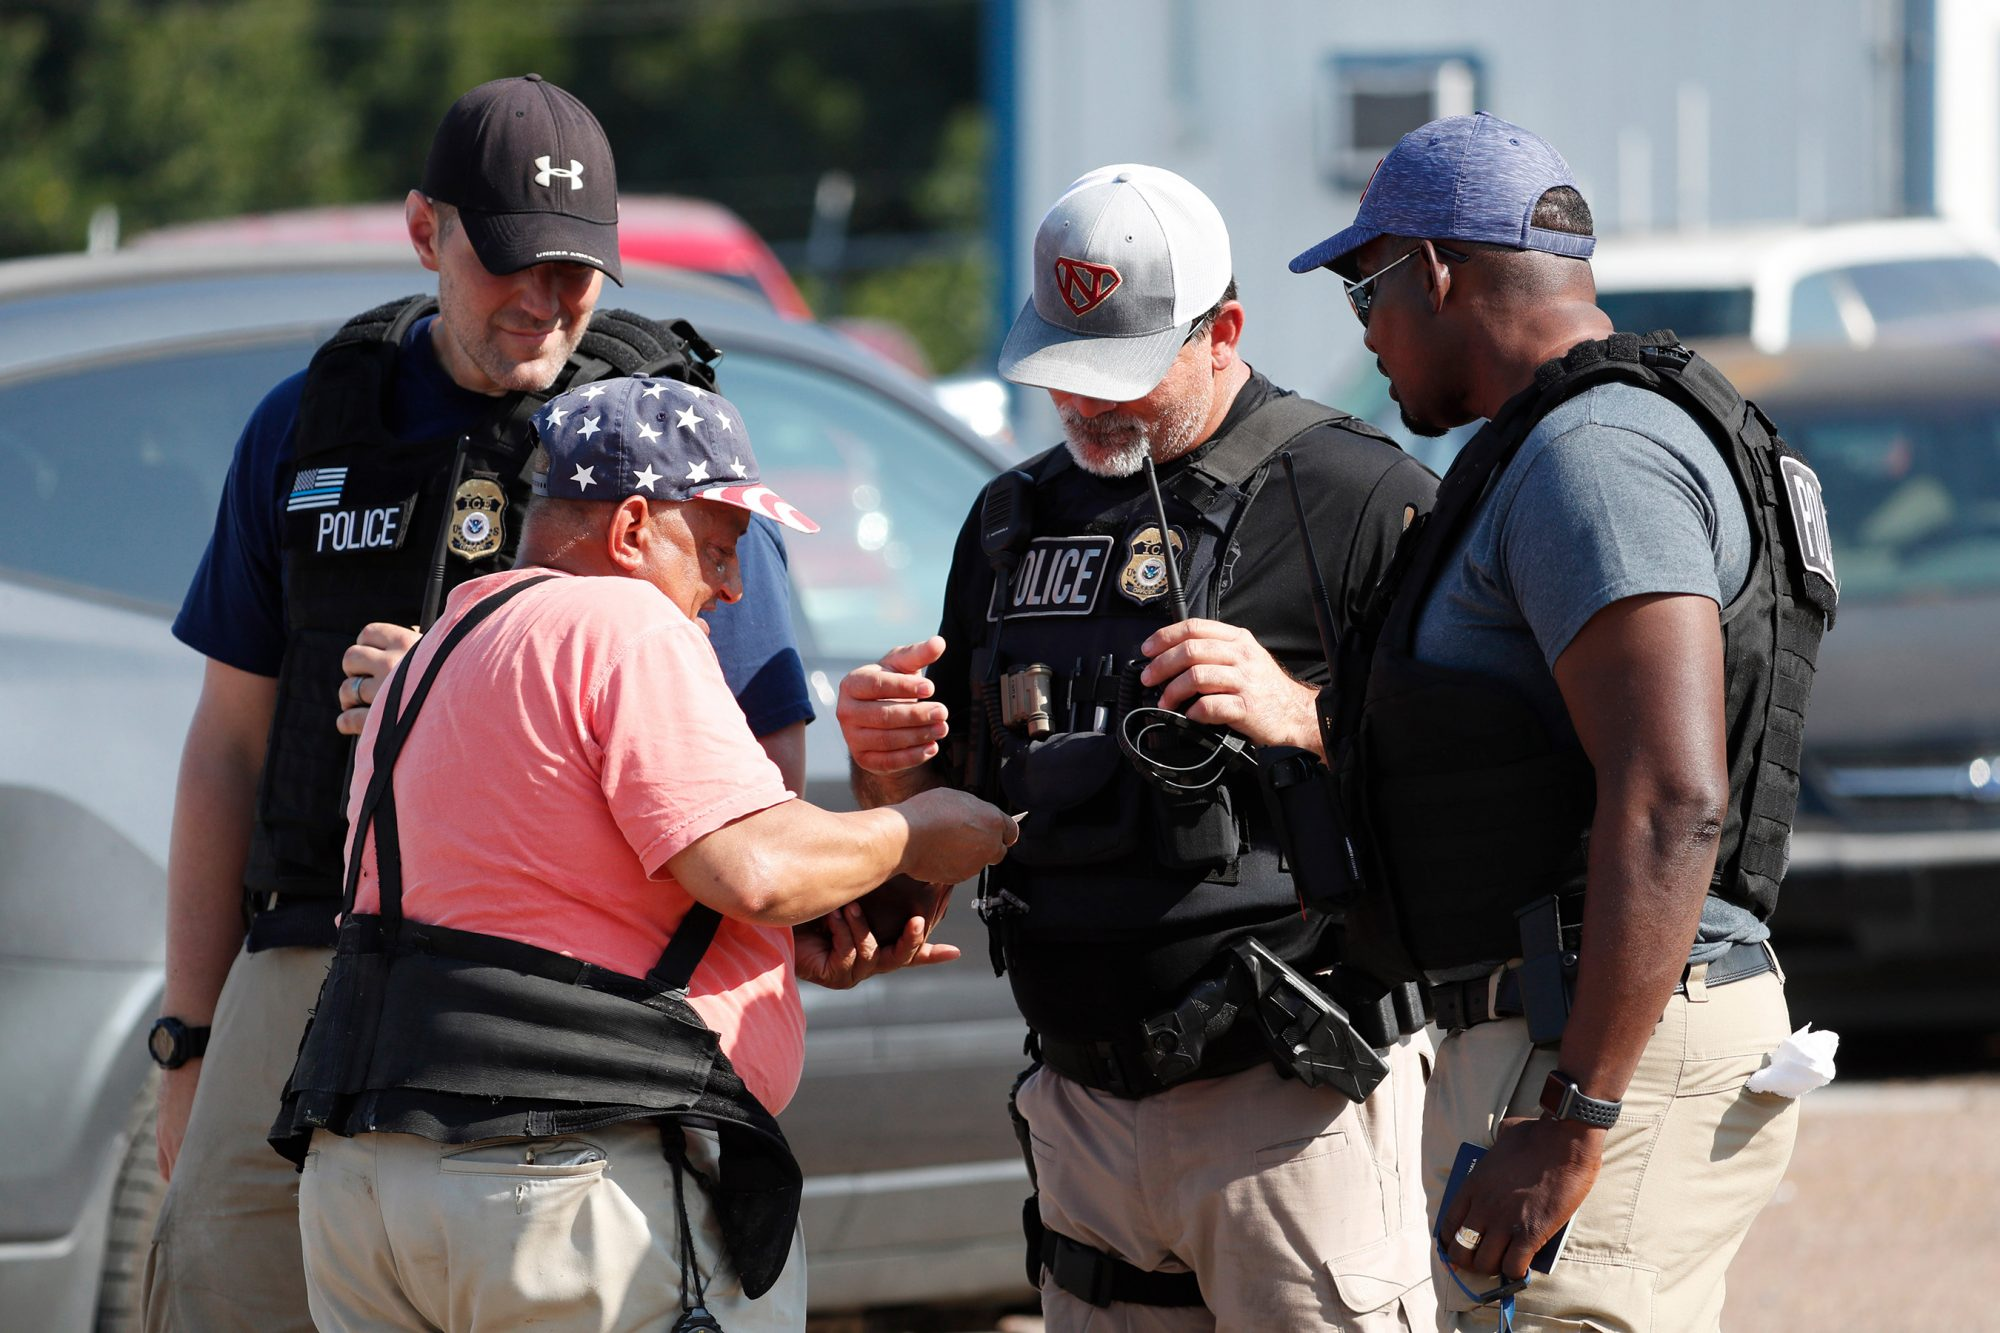 Foods Inc. plant in Morton, Miss., on . U.S. immigration officials raided several Mississippi food processing plants on Wednesday